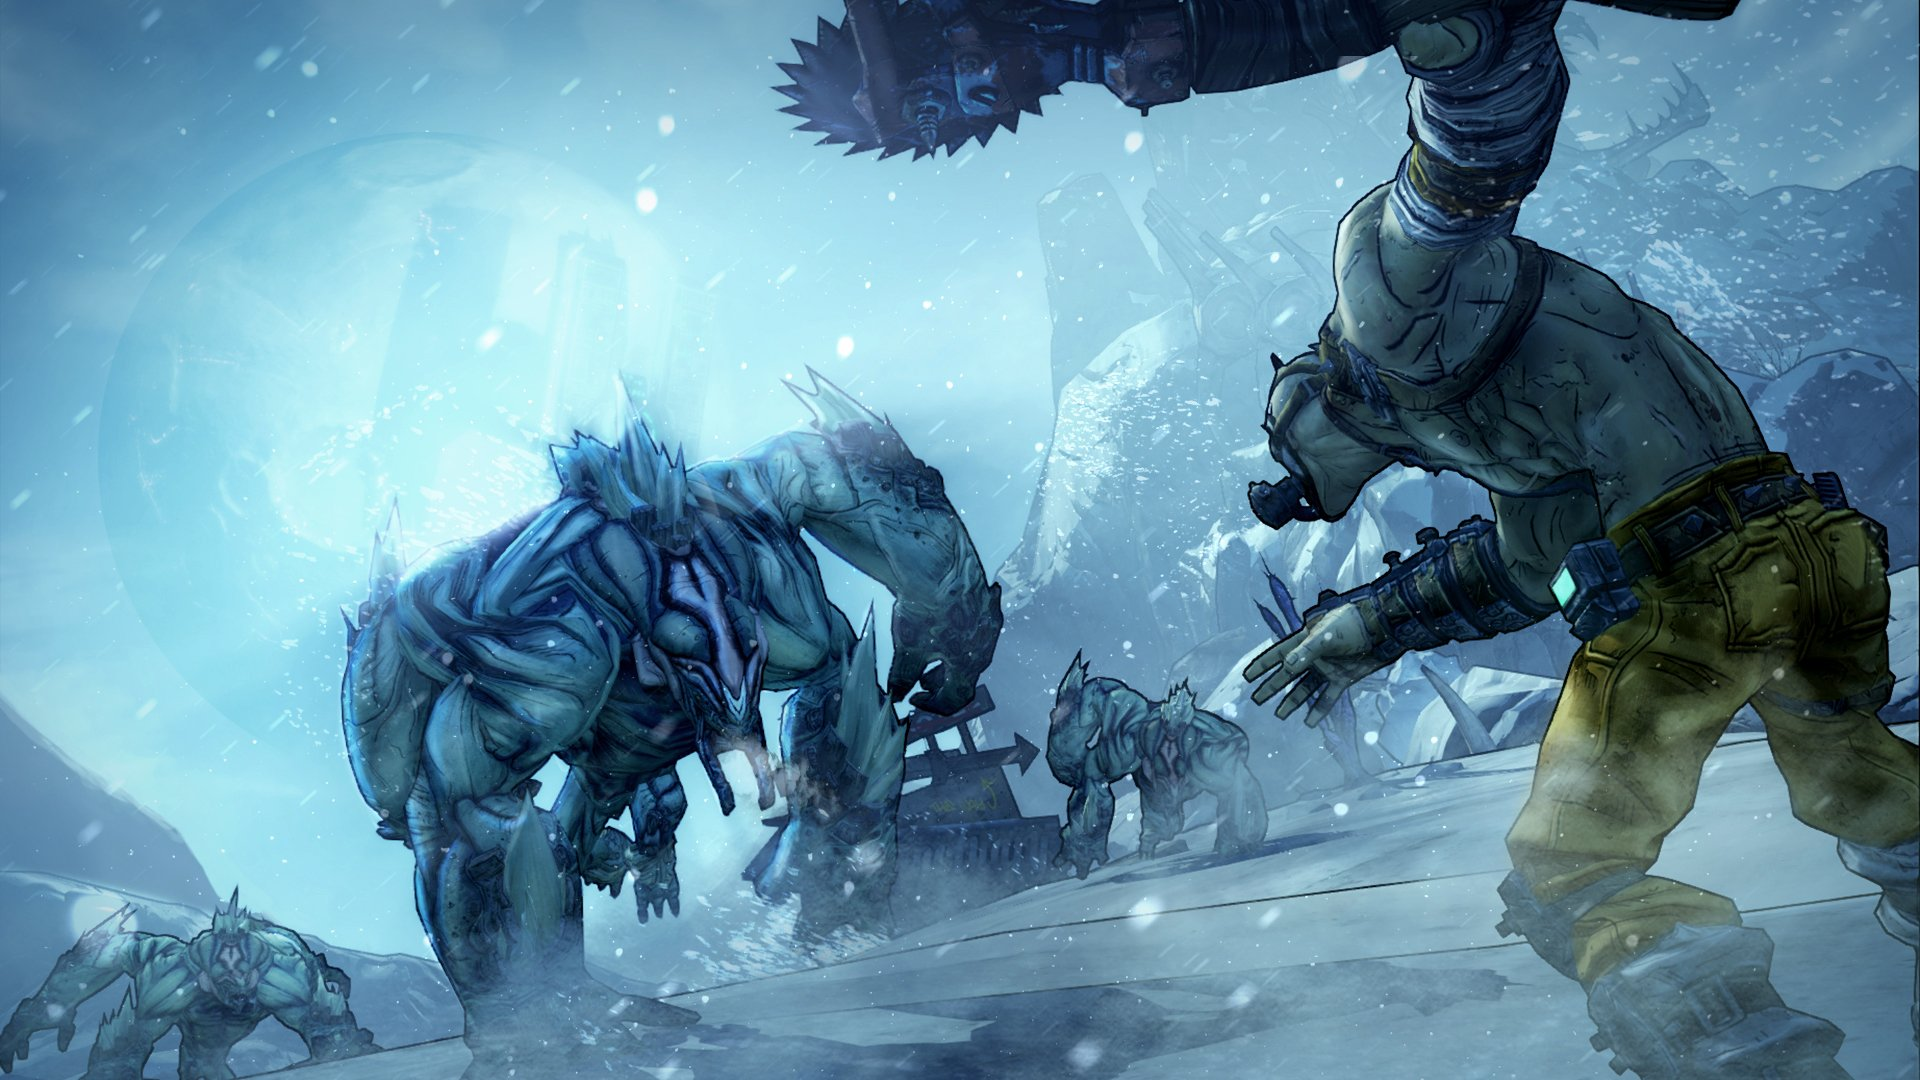 BORDERLANDS 2 Krieg the Psycho shooter sci fi action rpg wallpaper 1920x1080